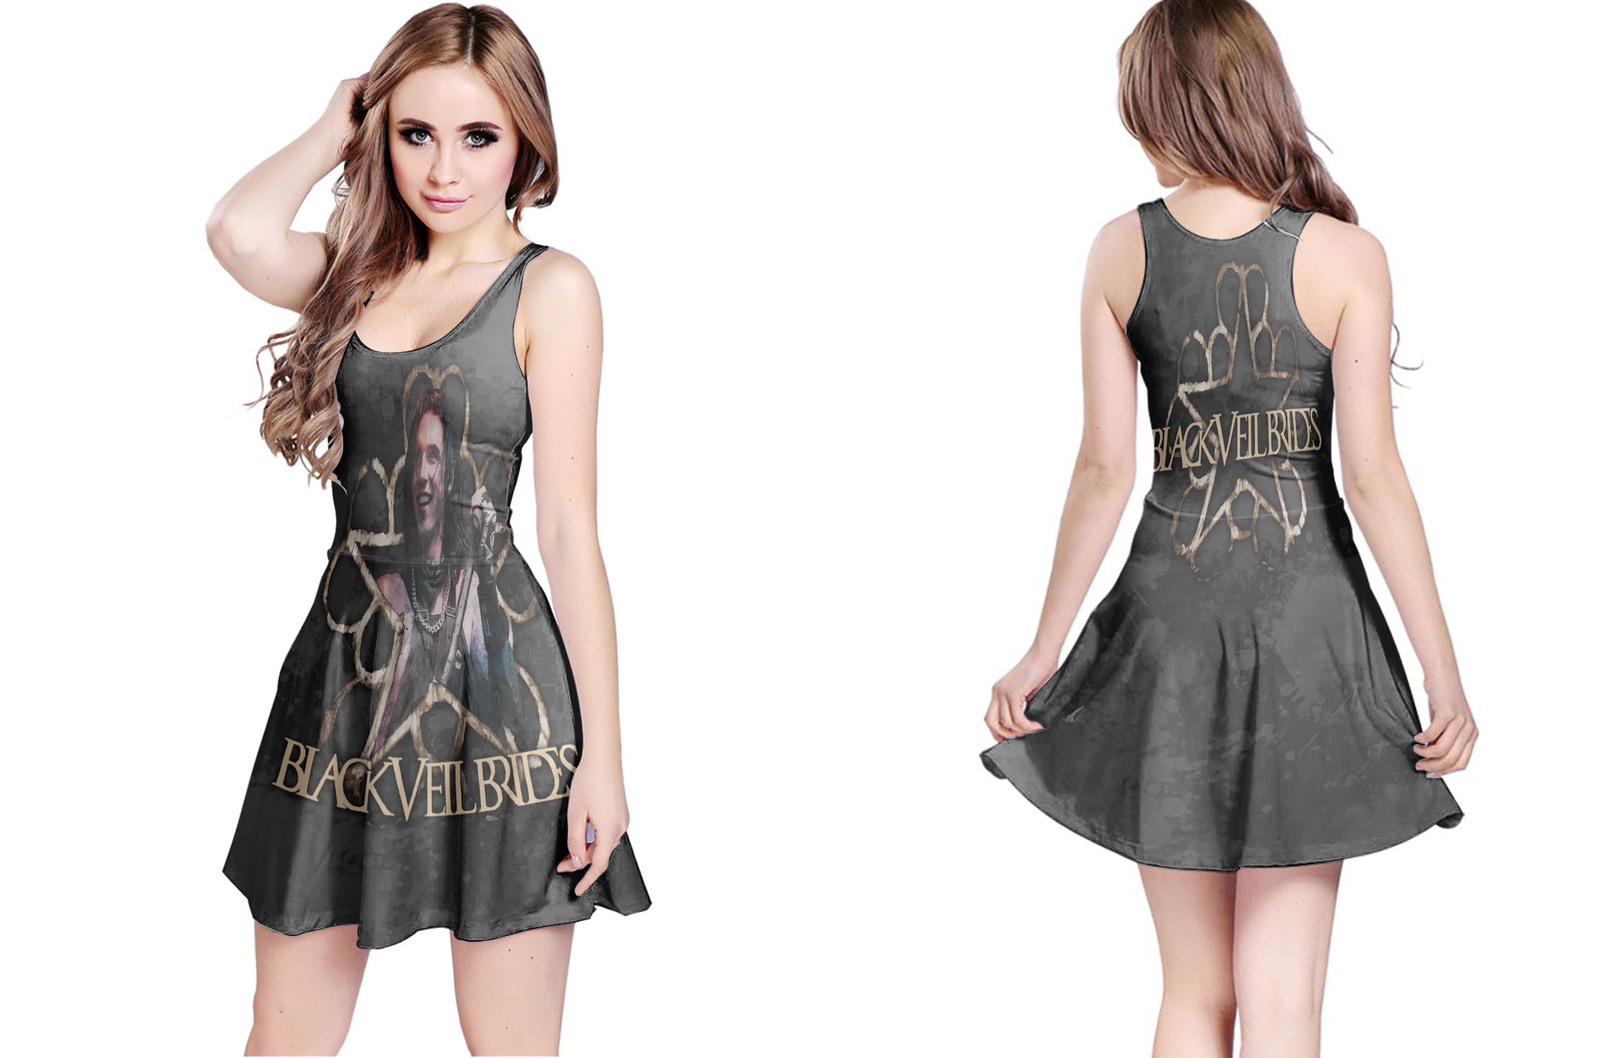 Primary image for Black Veil Brides Collection #2 Women's Reversible Dress